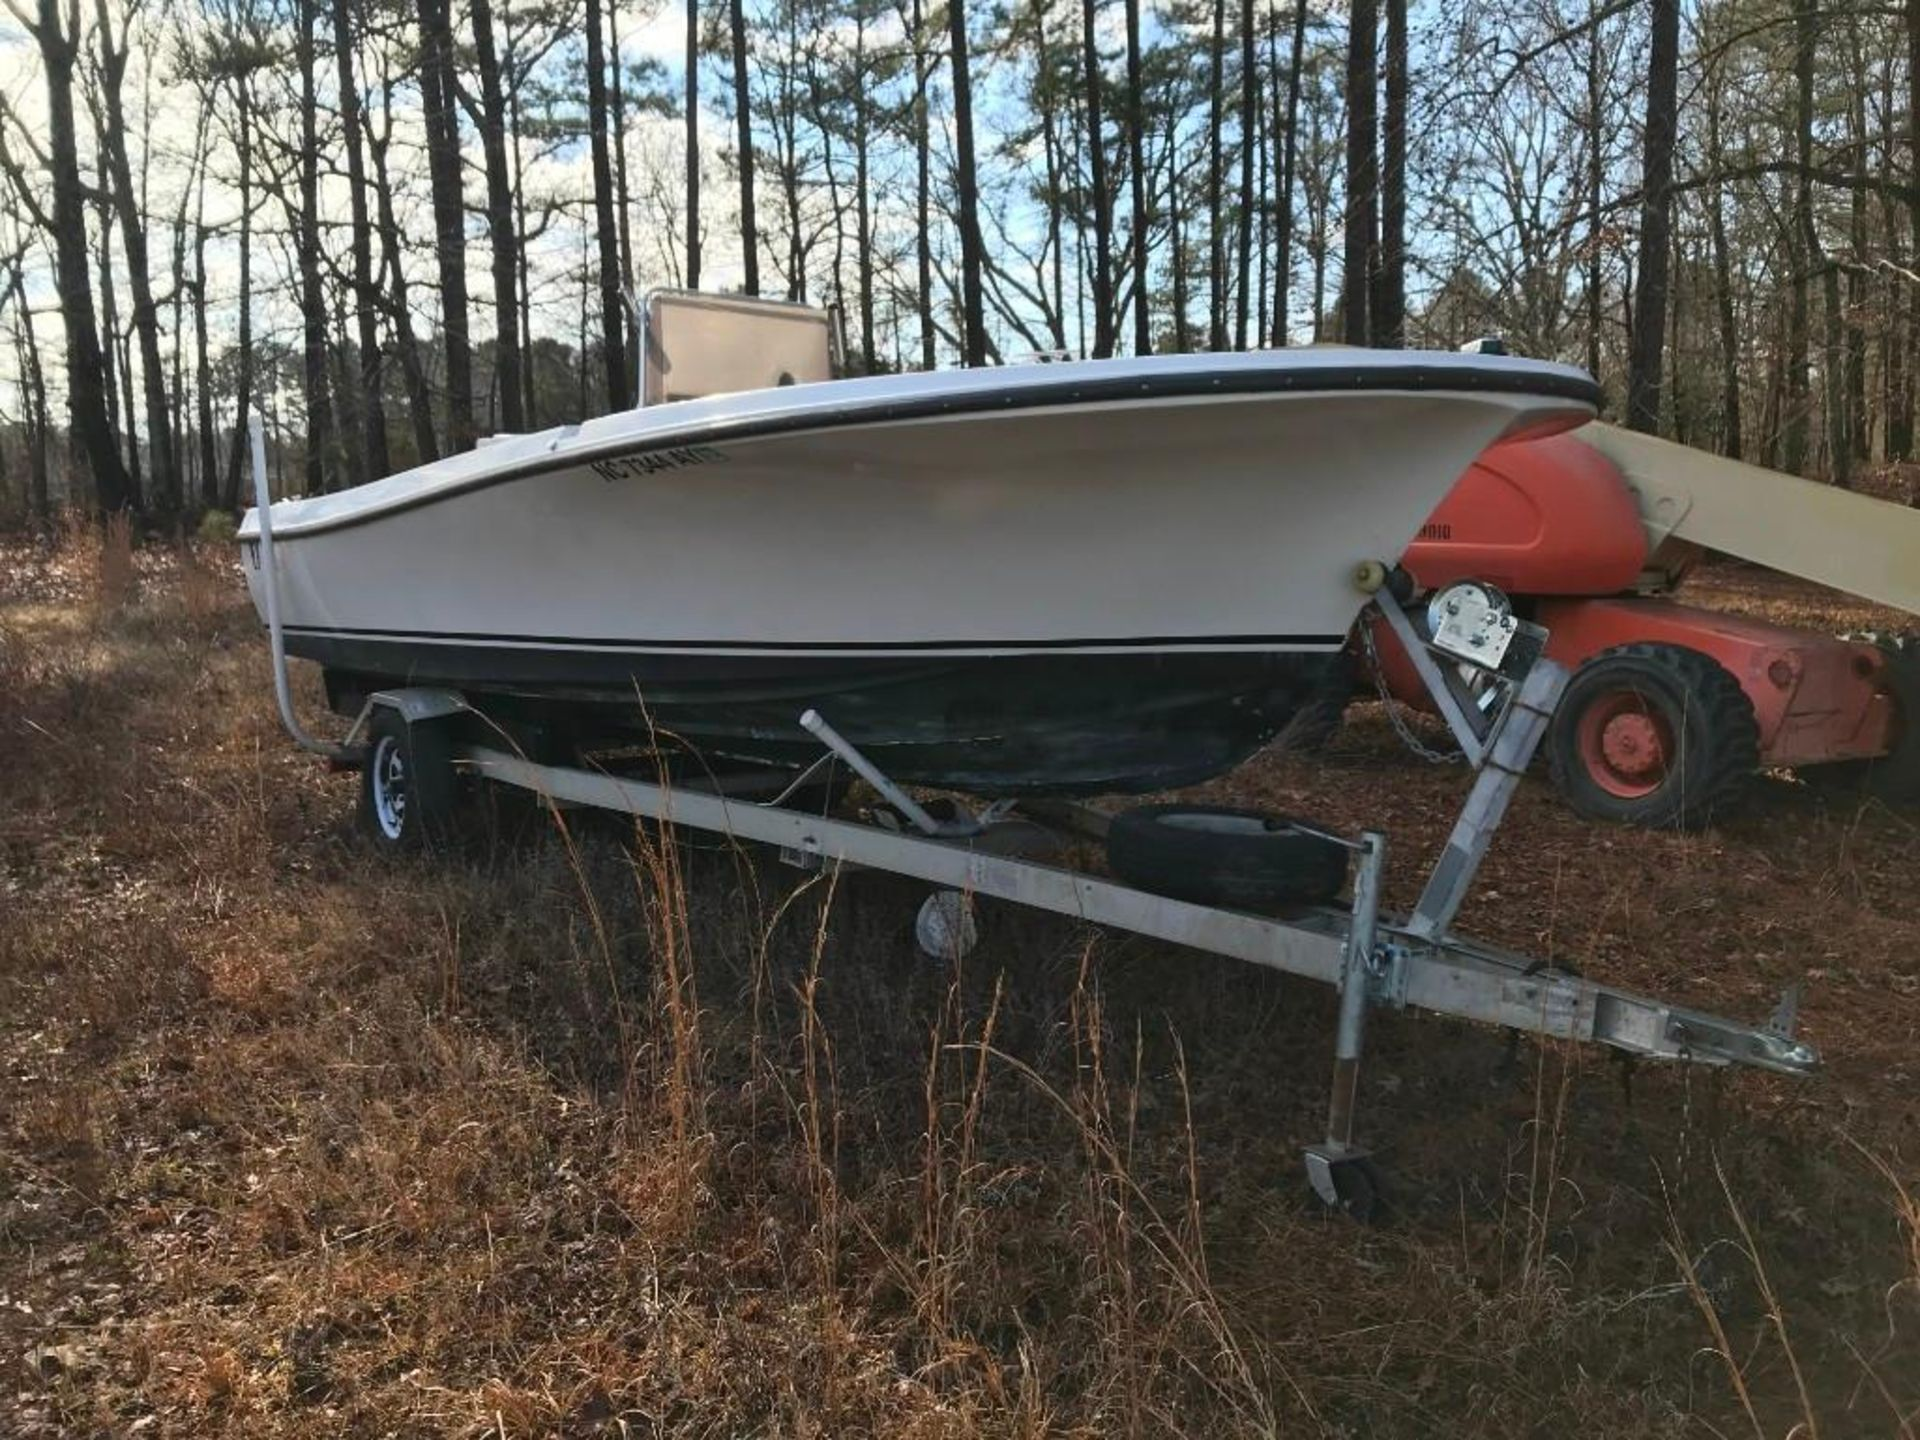 1972 WELLCRAFT F20 BOAT HULL - Image 2 of 8